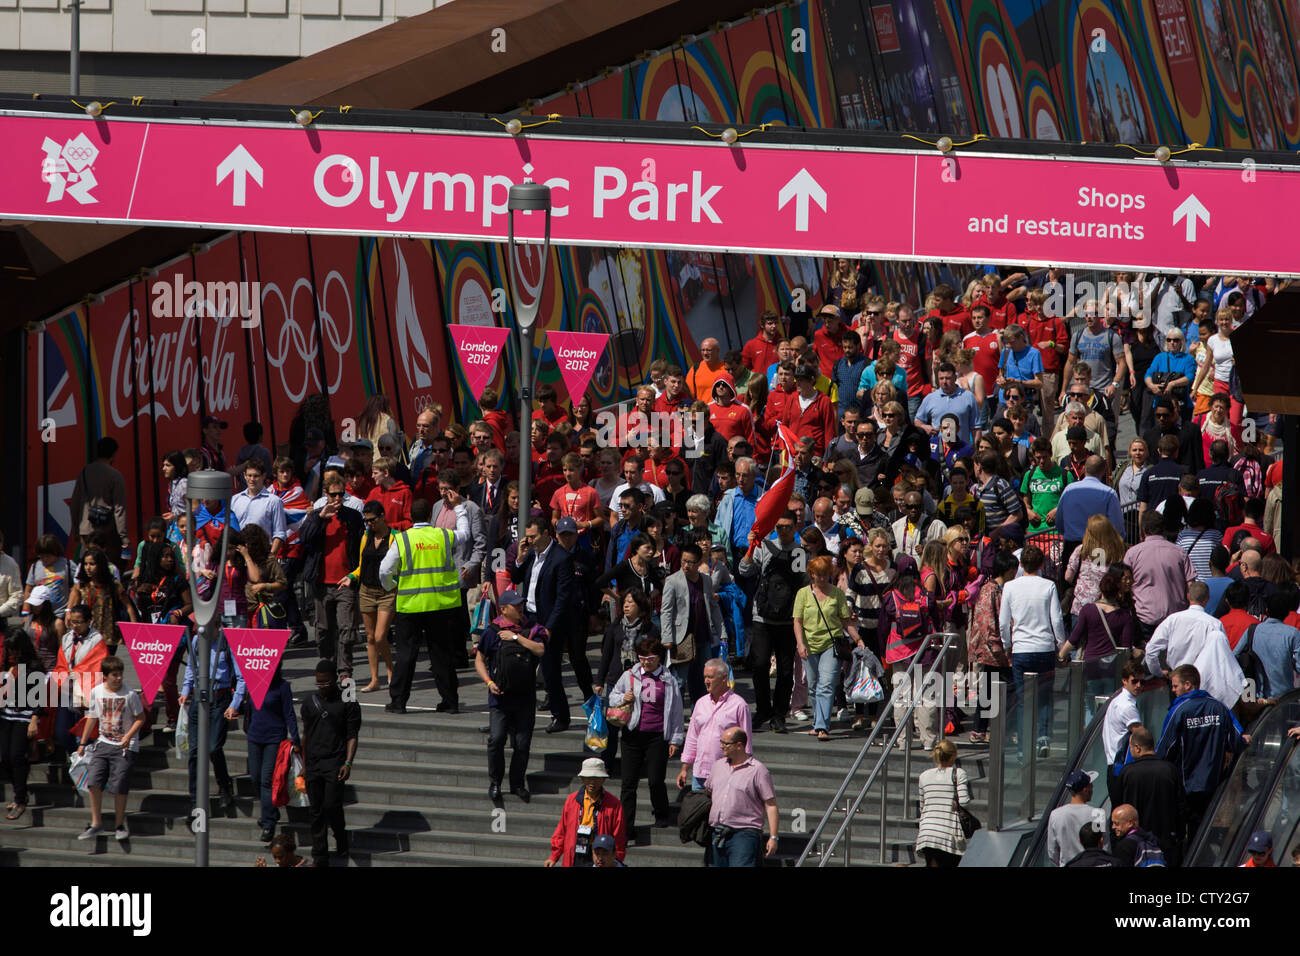 Aerial view of spectator crowds at the Westfield City shopping complex, Stratford that leads to the Olympic Park Stock Photo